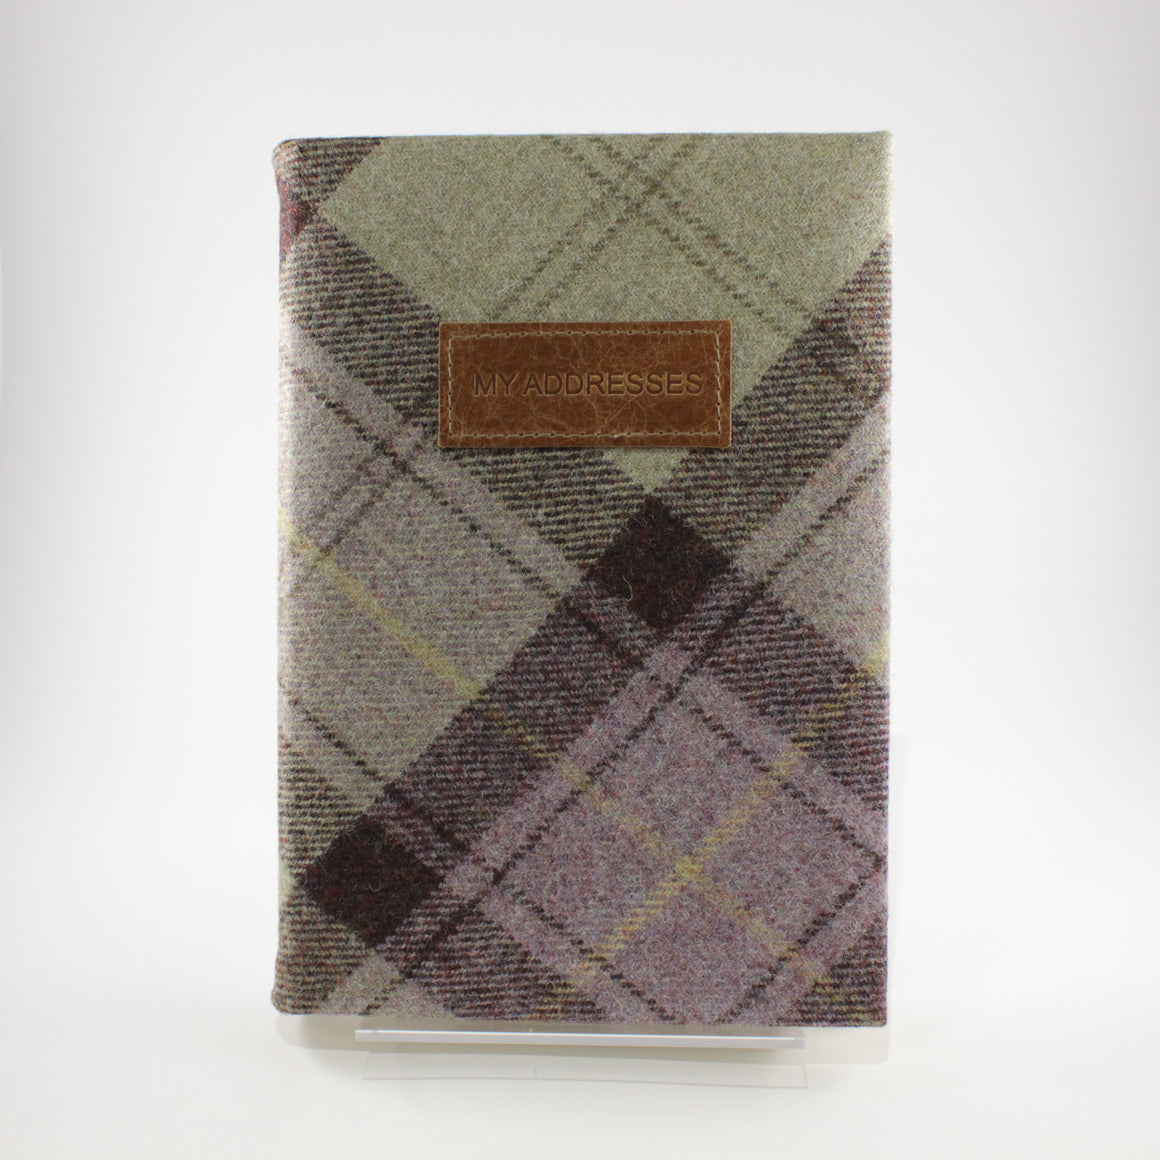 James Sinclair Large Address Book - A5